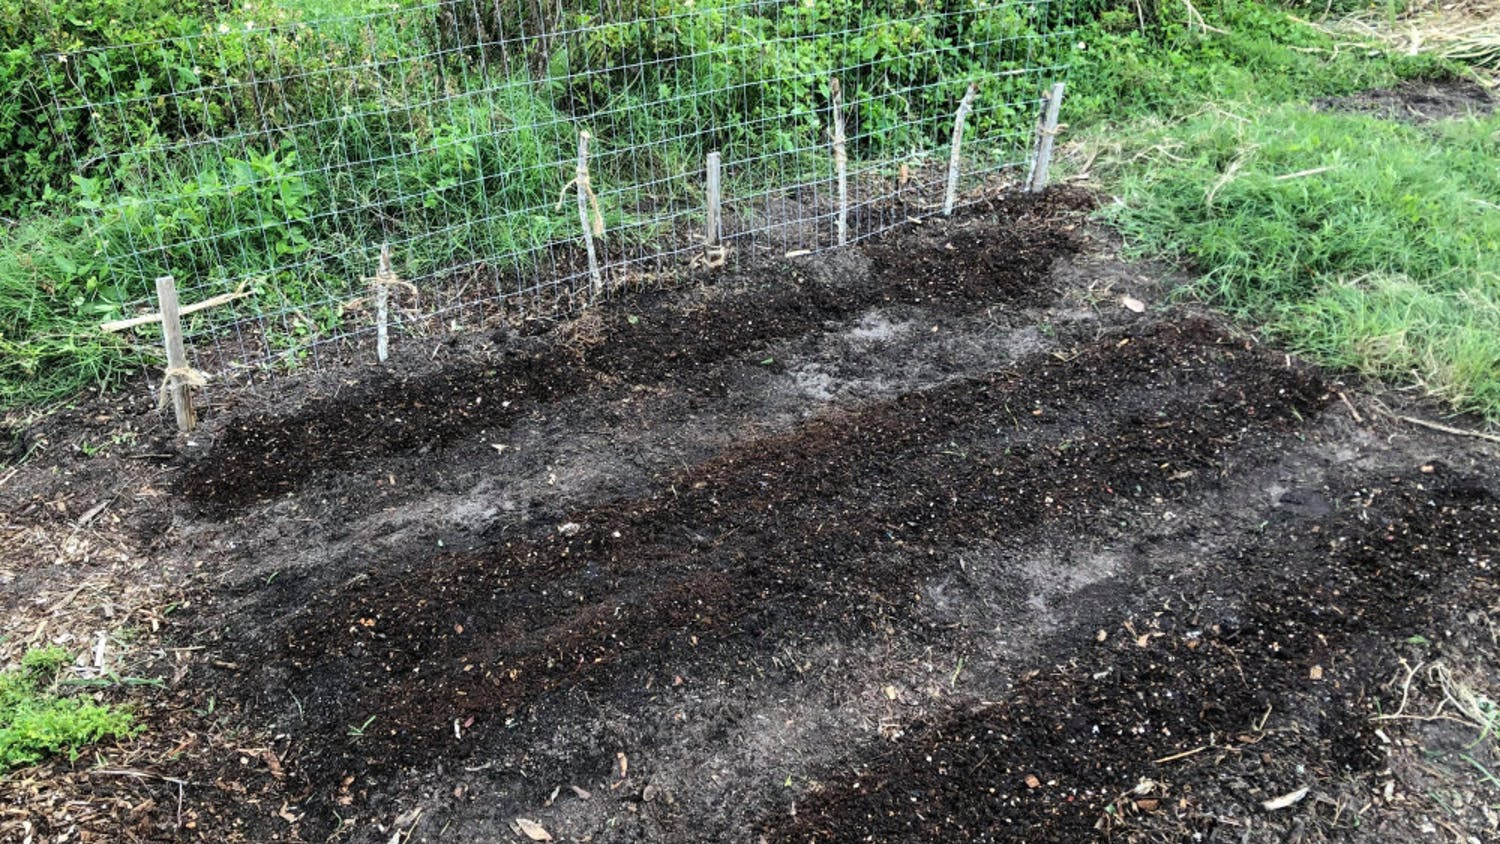 Composting is a sustainable process that reduces greenhouse emissions. Daisy Andrews, a 22-year-old UF natural resource conservation senior, adds compost (the darker lines) on top of the seeds she planted.